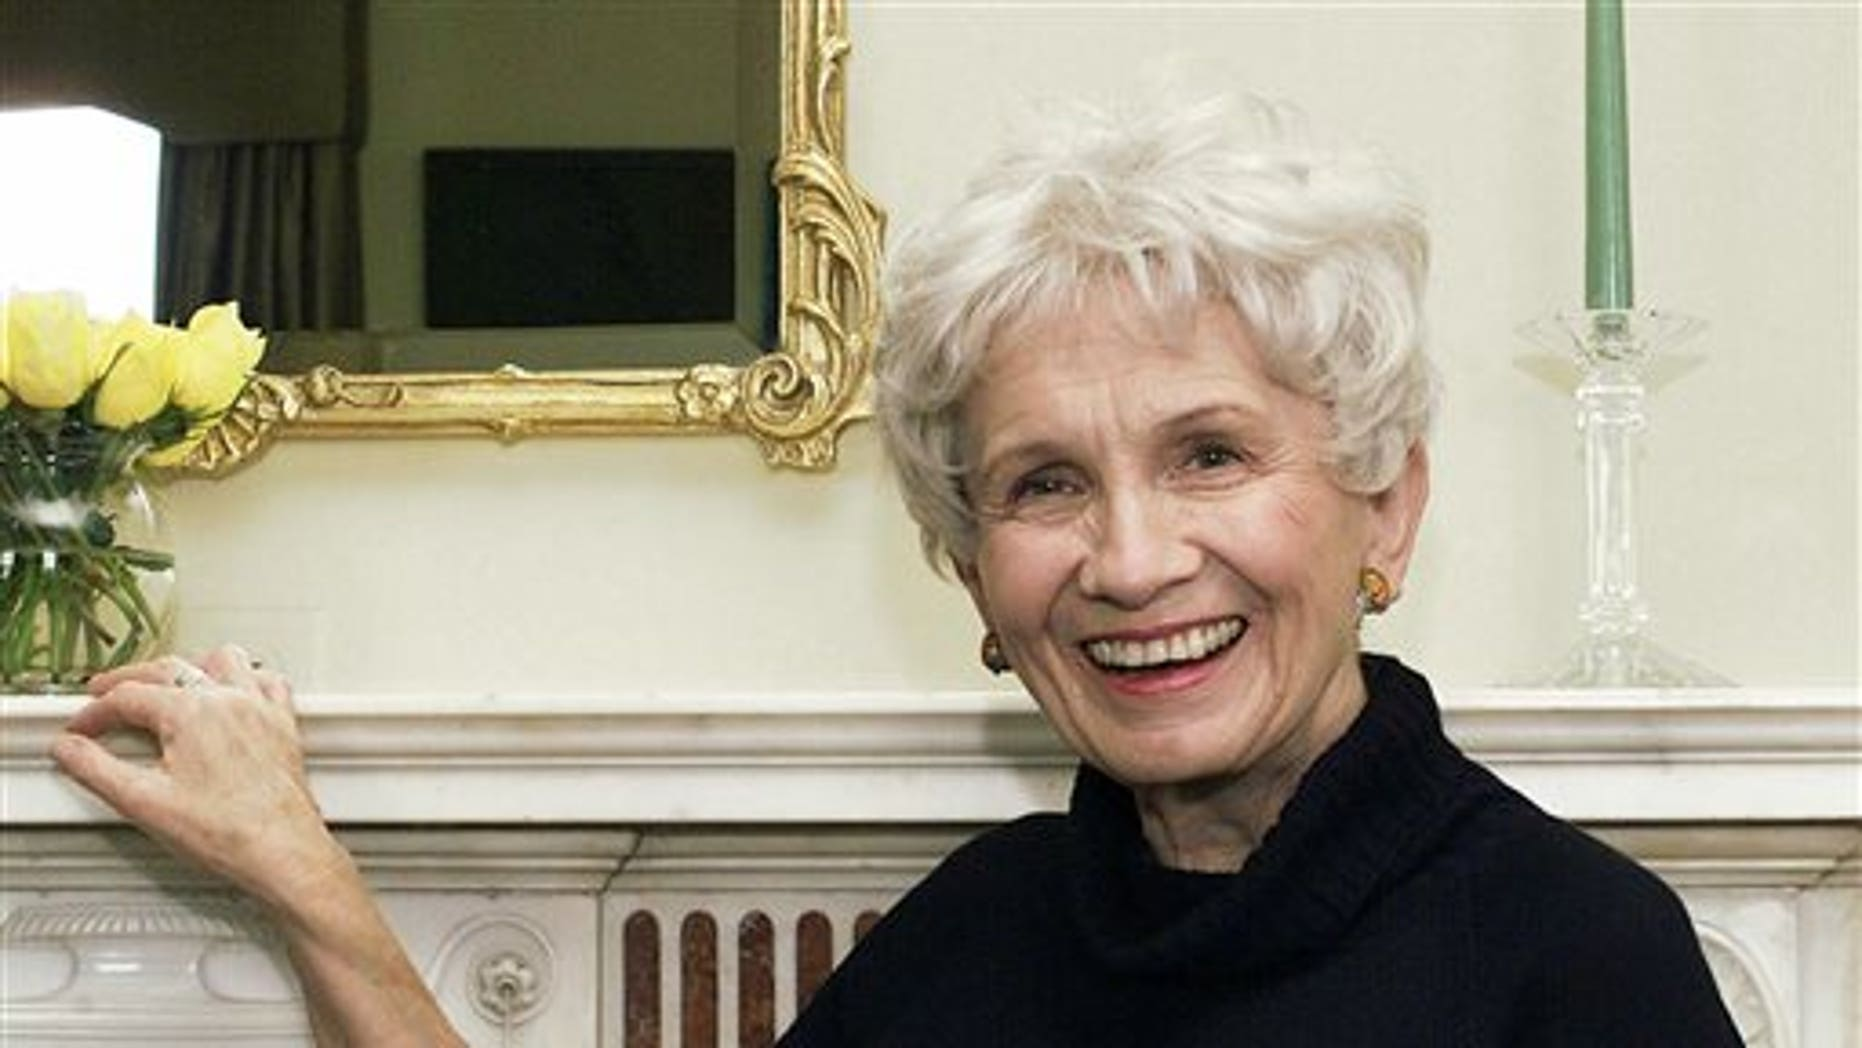 In this Oct. 28, 2002 file photo, Canadian author Alice Munro poses for a photograph at the Canadian Consulate's residence in New York. Munro has won this year's Nobel Prize in literature it was announced Thursday Oct. 10, 2013.